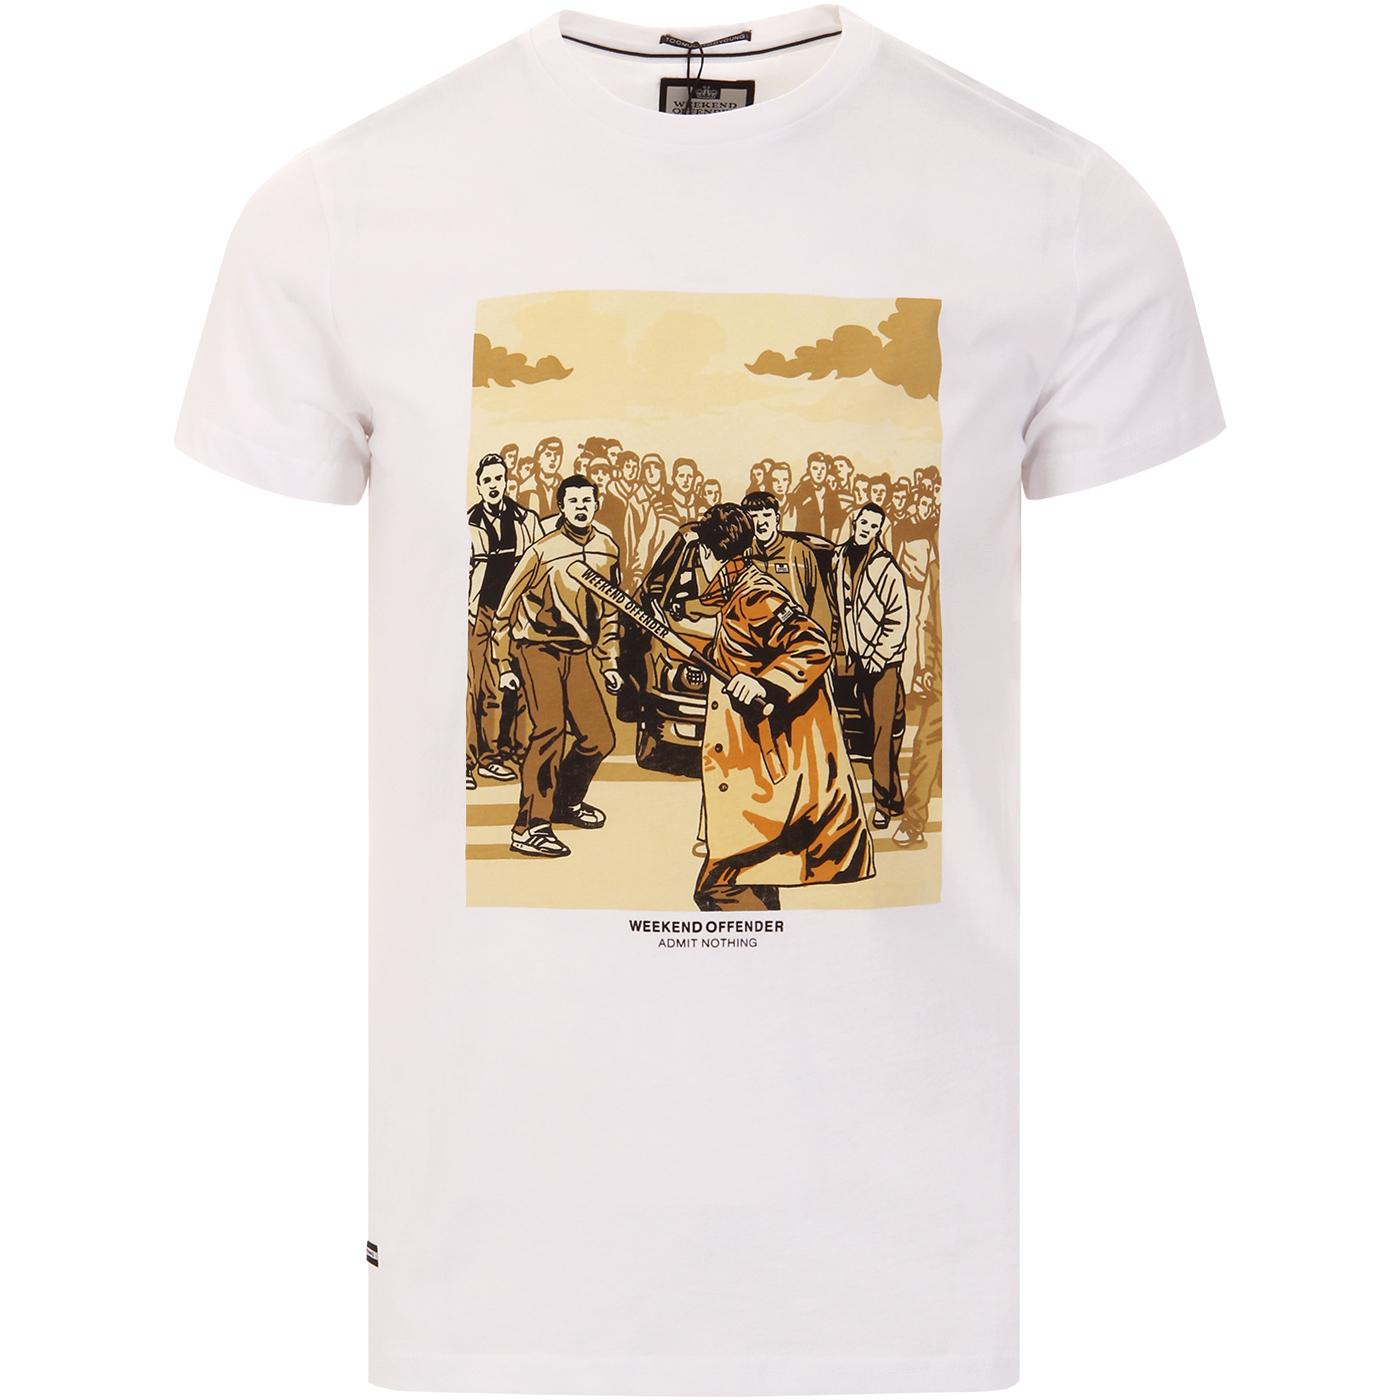 The Firm WEEKEND OFFENDER Retro Graphic Print Tee